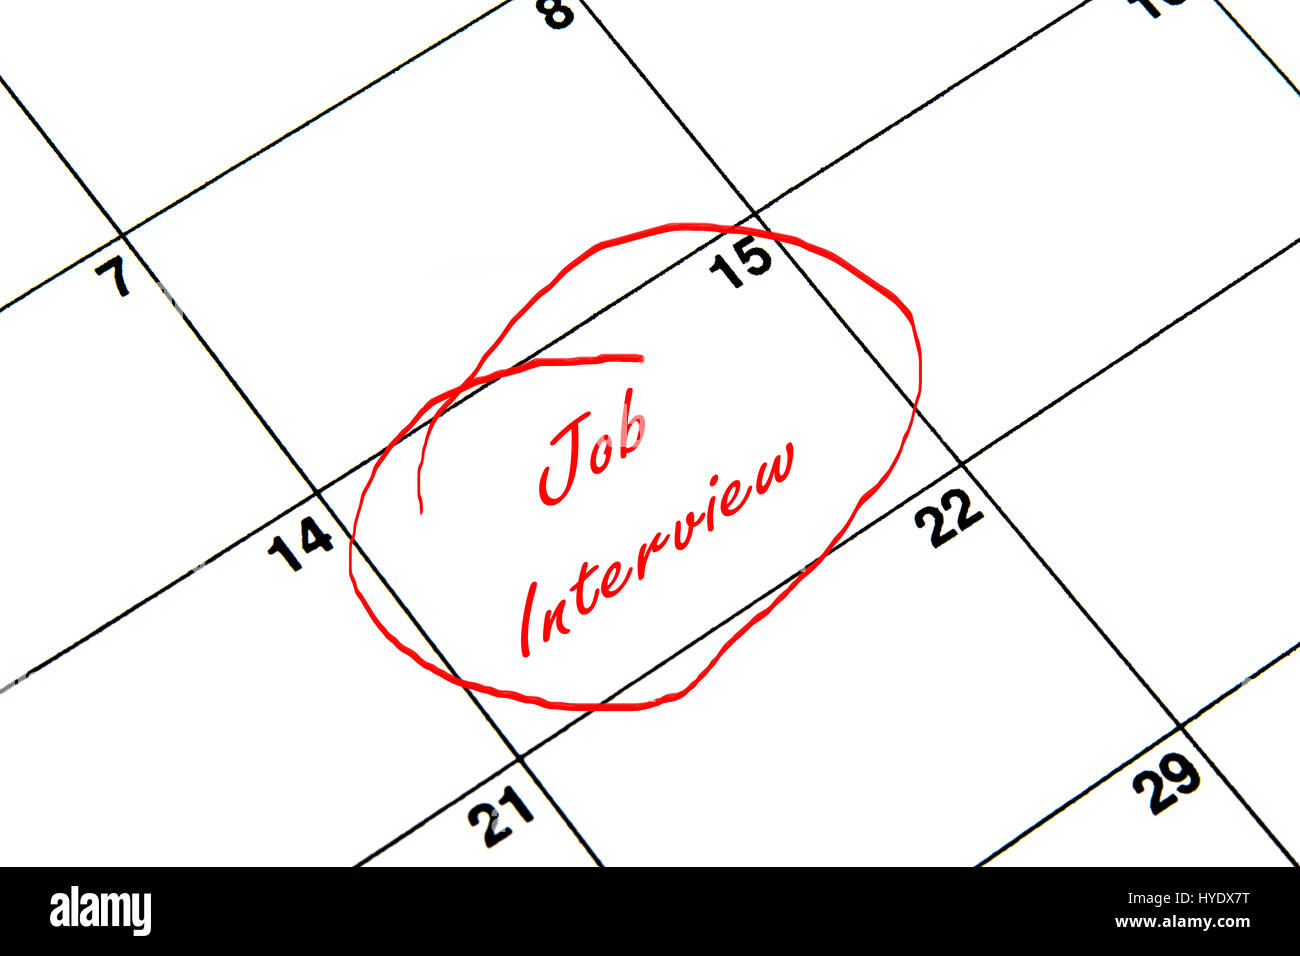 Job Interview Circled on A Calendar in Red - Stock Image